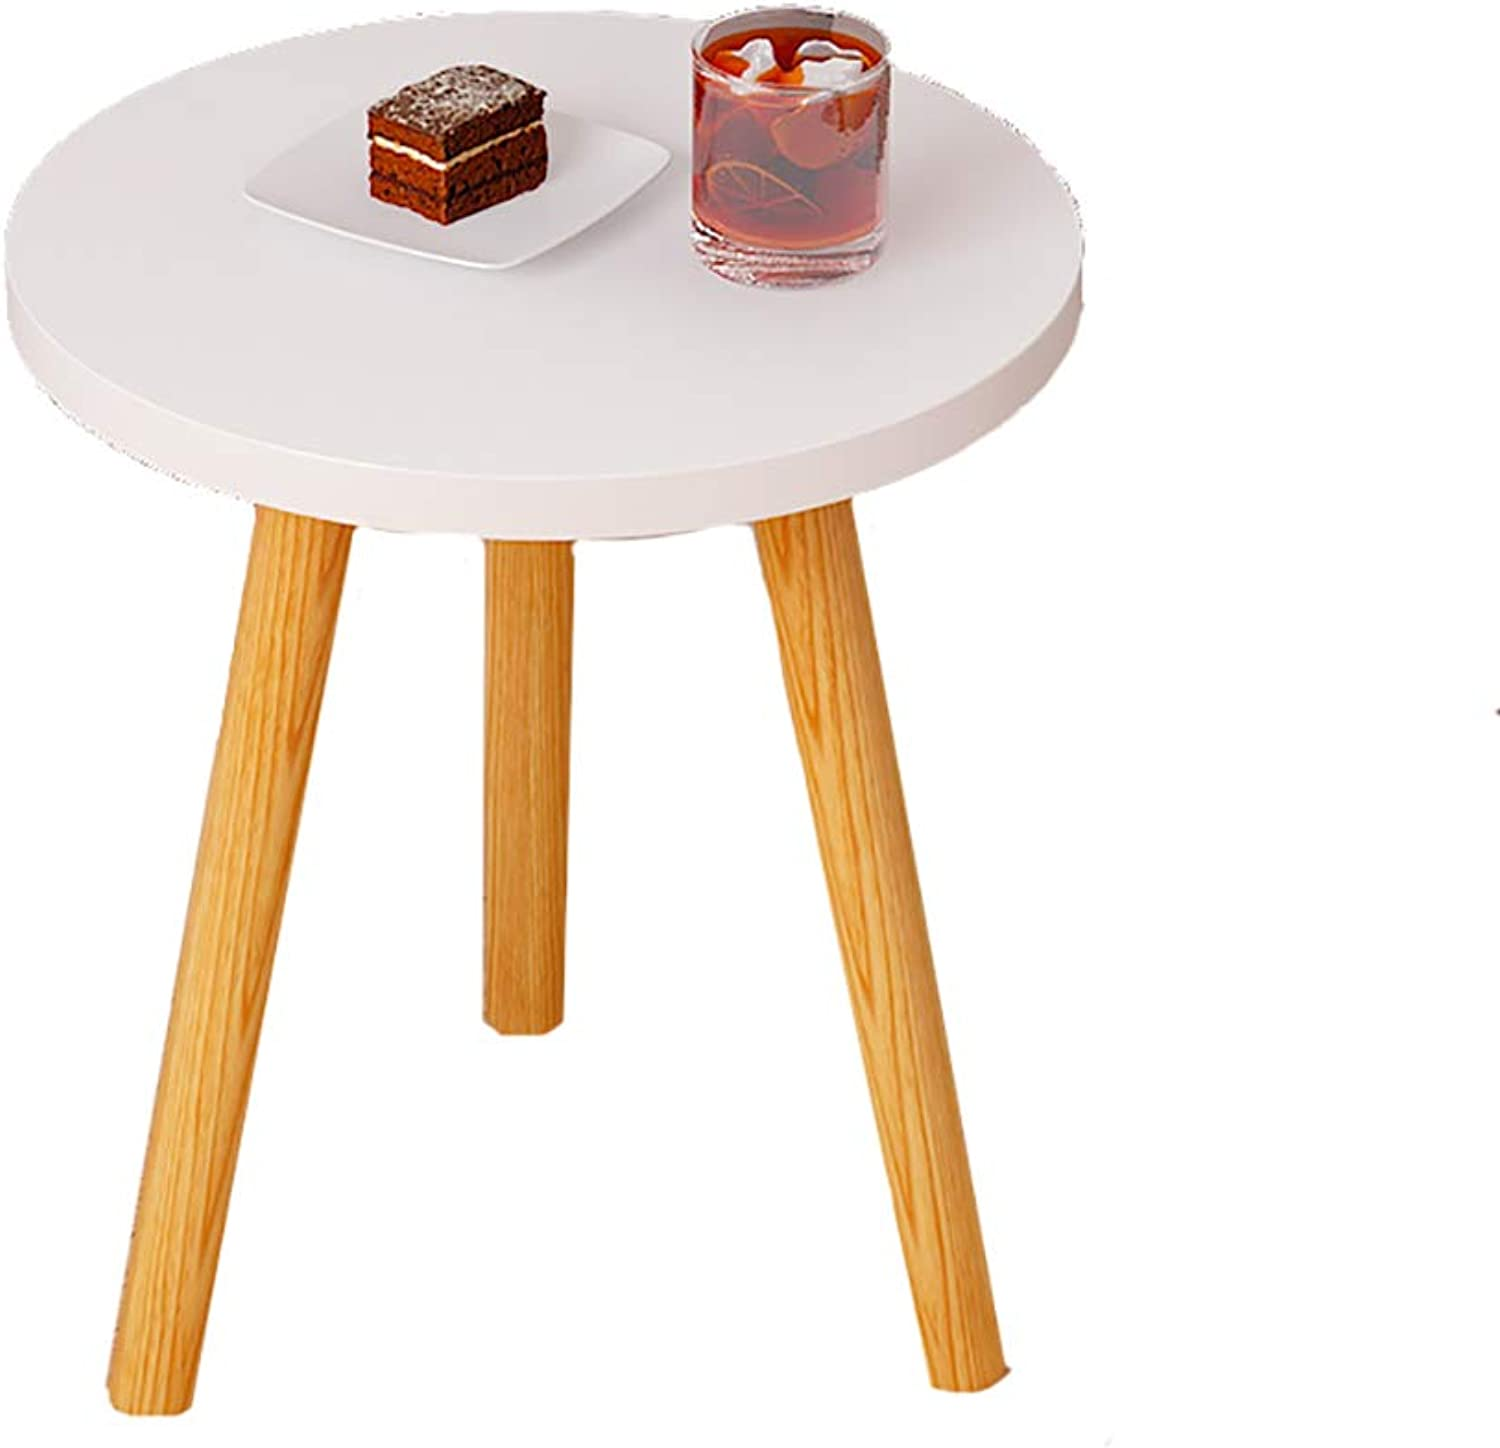 Round End Table Living Room,Coffee Table,Sofa Hall Table for Small Space,Three Legged Solid Wood End Table,White (Size   40  40  42.5CM)